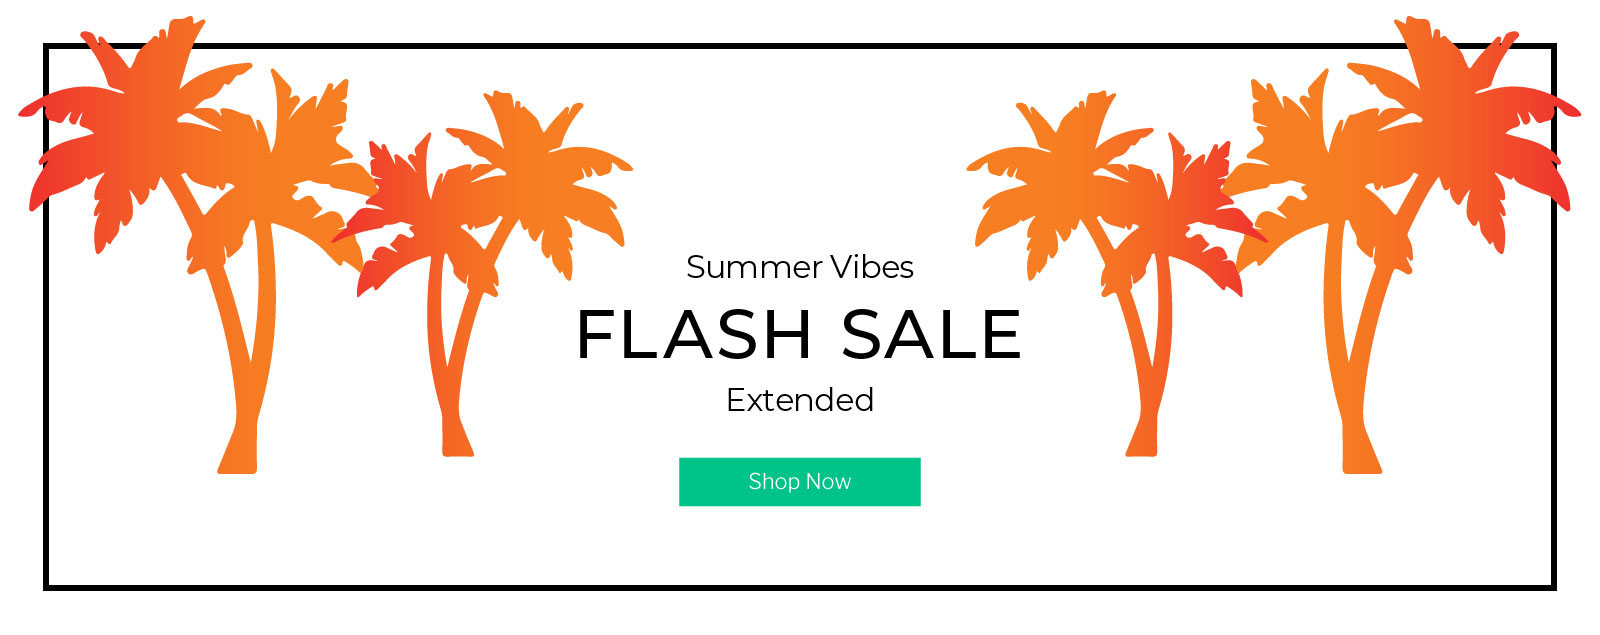 Summer Vibes Flash Sale Extended - Shop Now